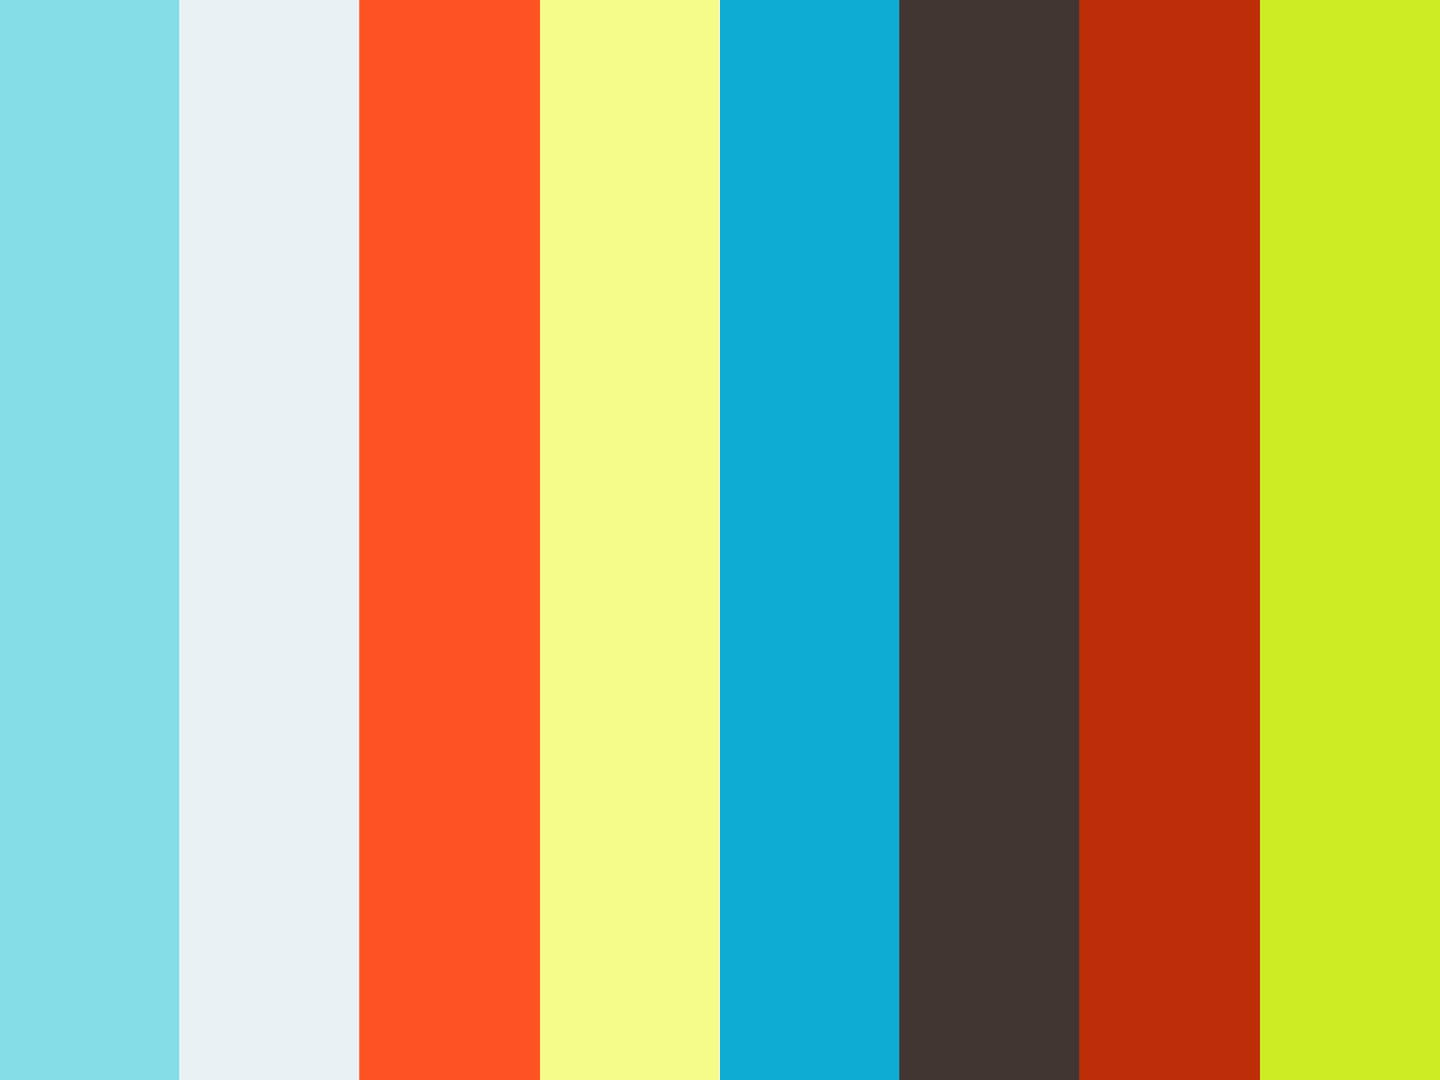 wiring diagram 2007 jeep wrangler wiring image jeep wrangler repair manual 2007 2008 2009 2010 on vimeo on wiring diagram 2007 jeep wrangler